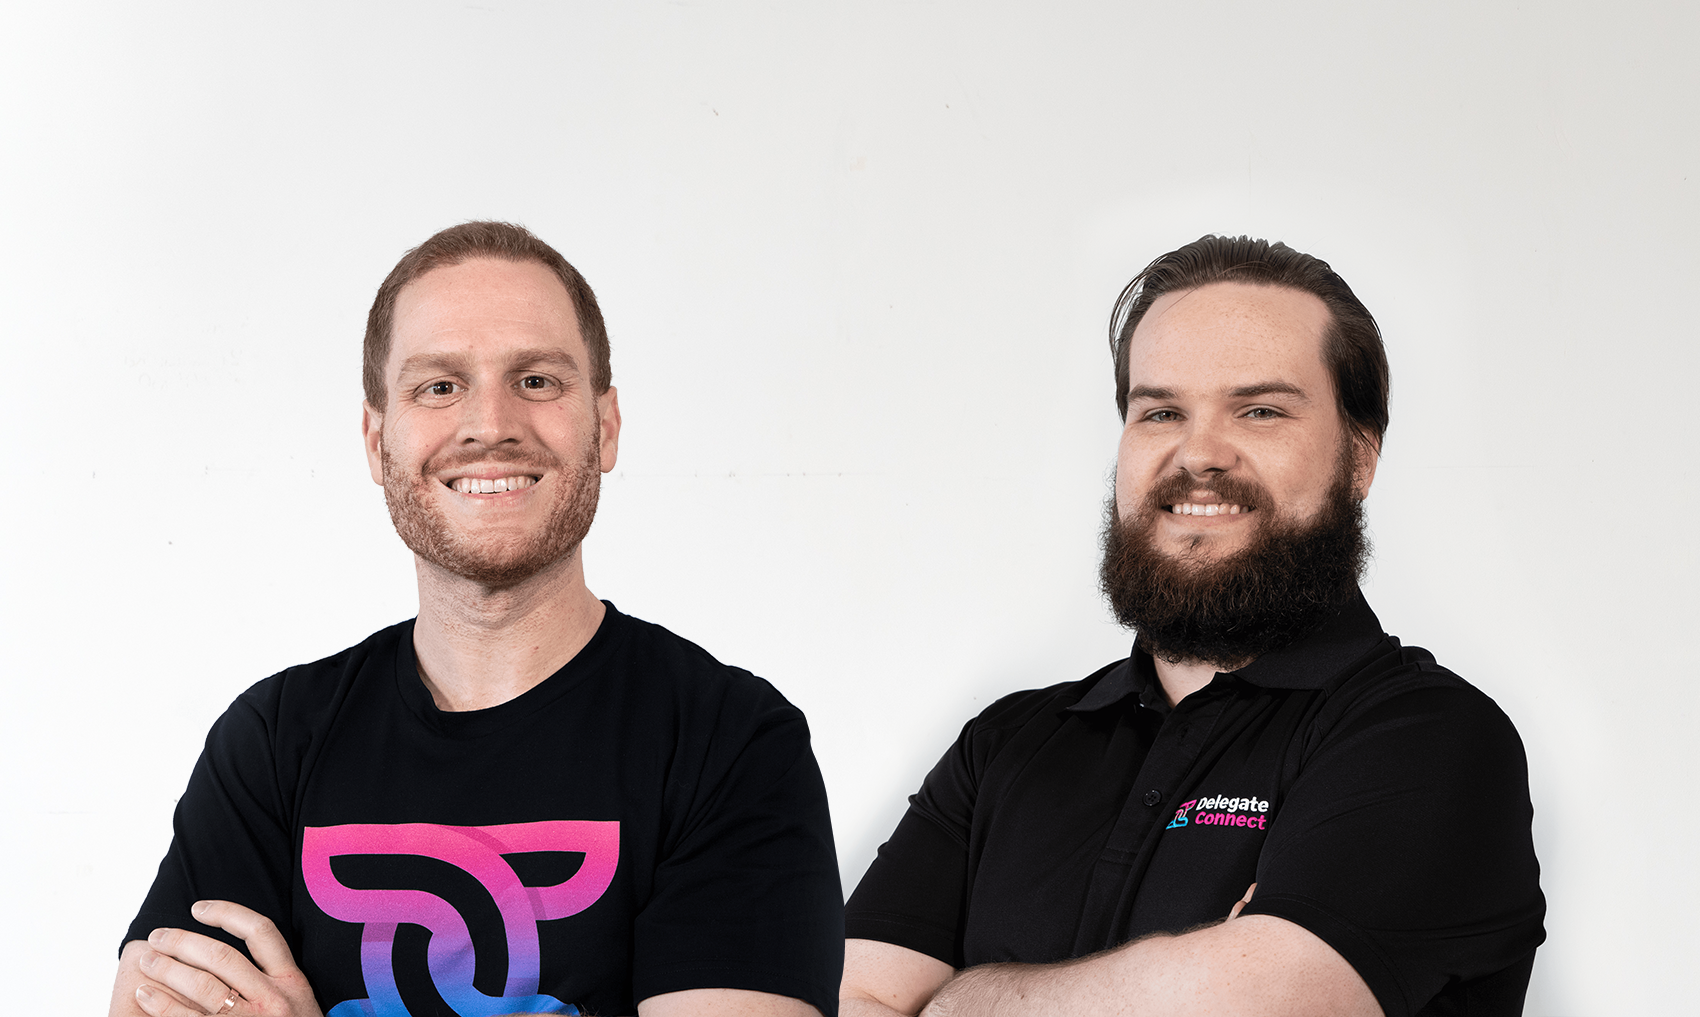 Online events platform Delegate Connect receives M AUD led by AirTree – TechCrunch